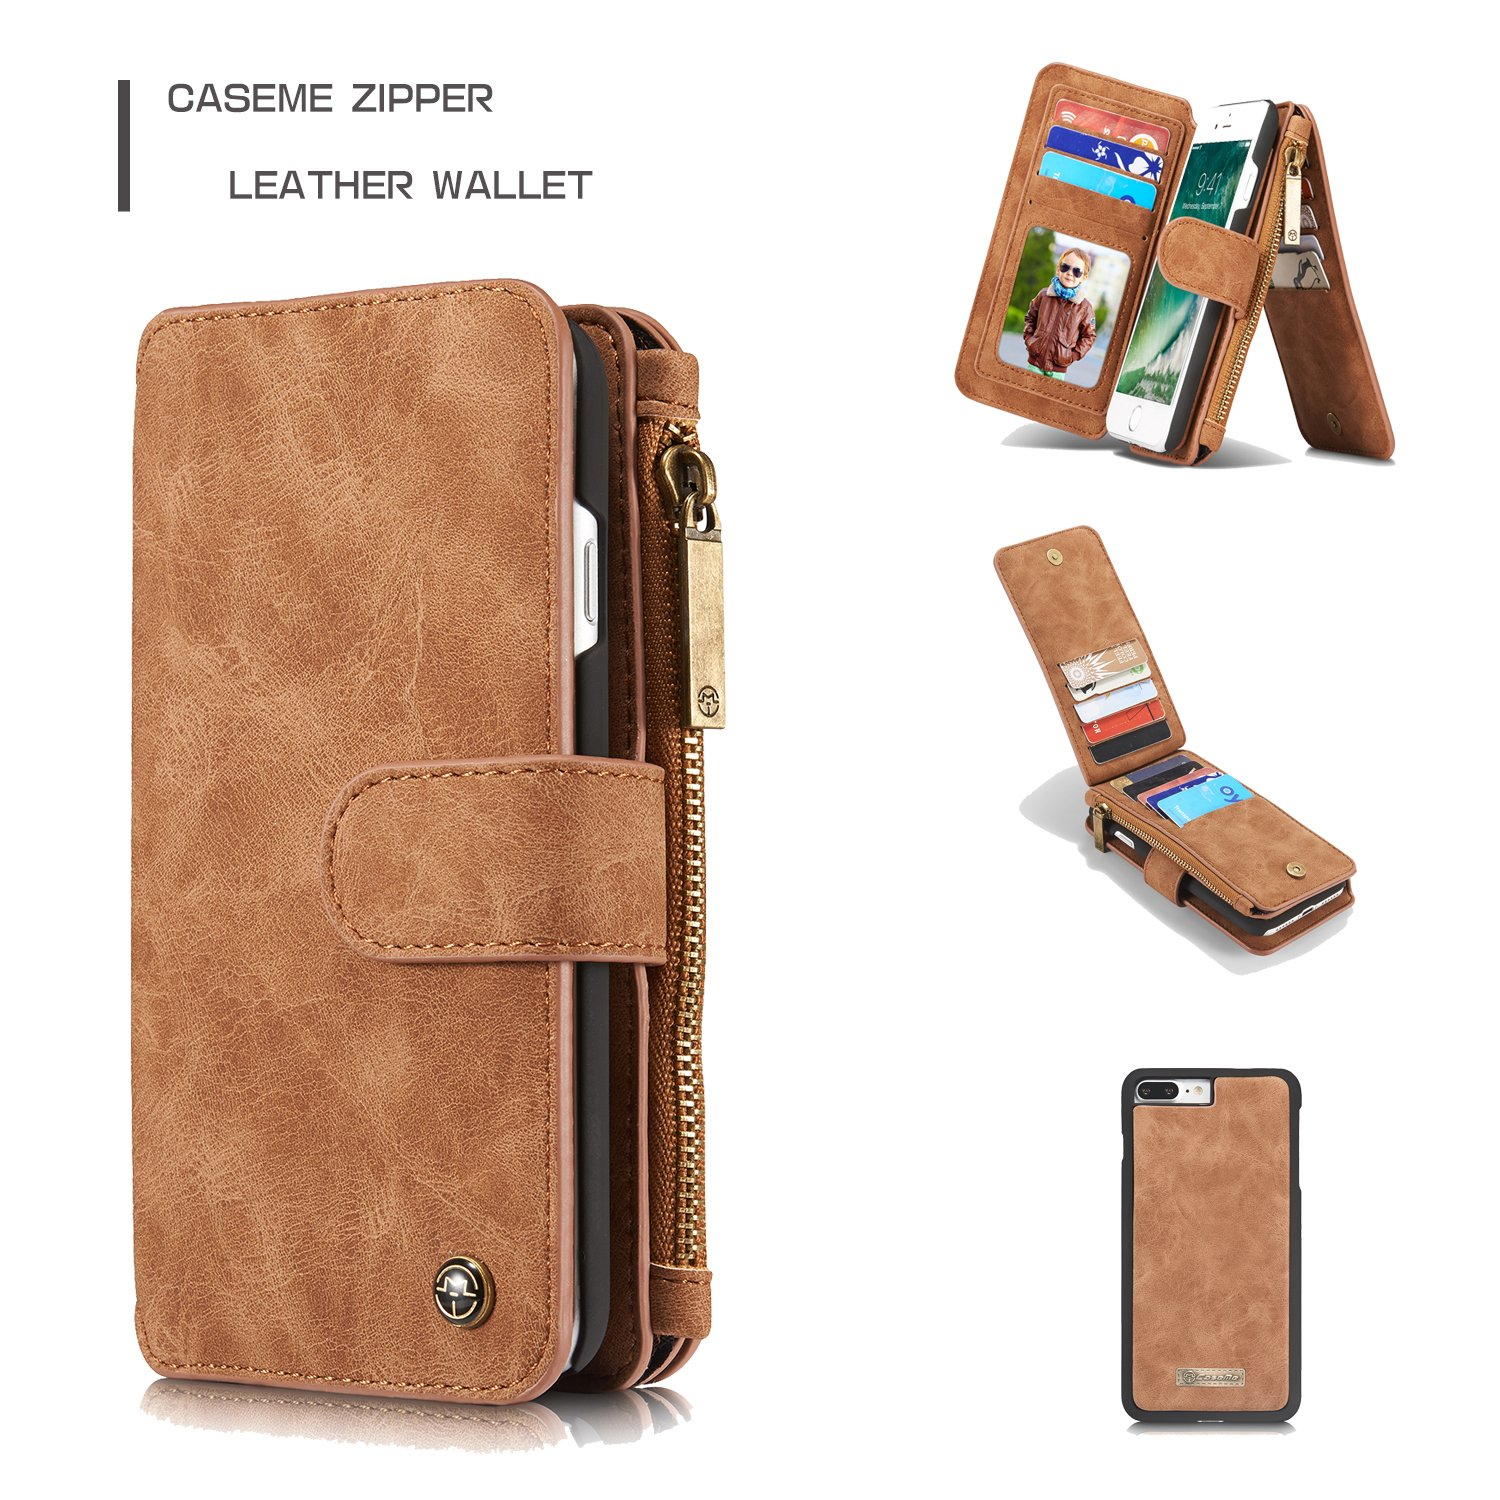 ab5a4ef3e Amazon.com: iPhone 7 Plus Case, Caseme 007 2 in 1 Split Multi-Slot Wallet  Real Leather Cover Case for iPhone 7 Plus (Brown): Cell Phones & Accessories